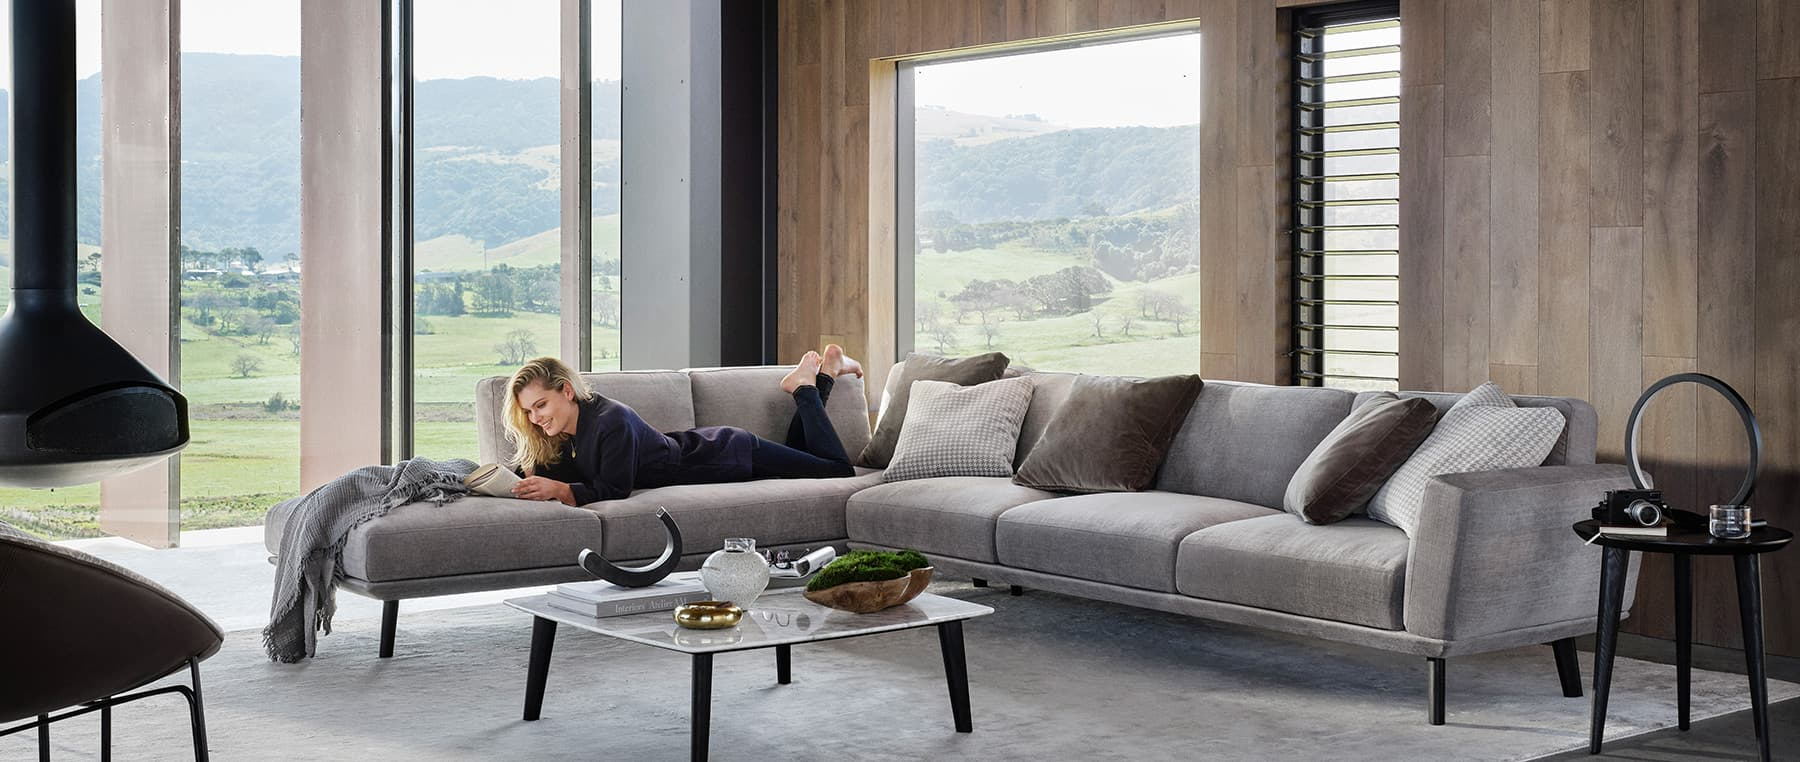 squarerooms king living sofa grey living room woman reading